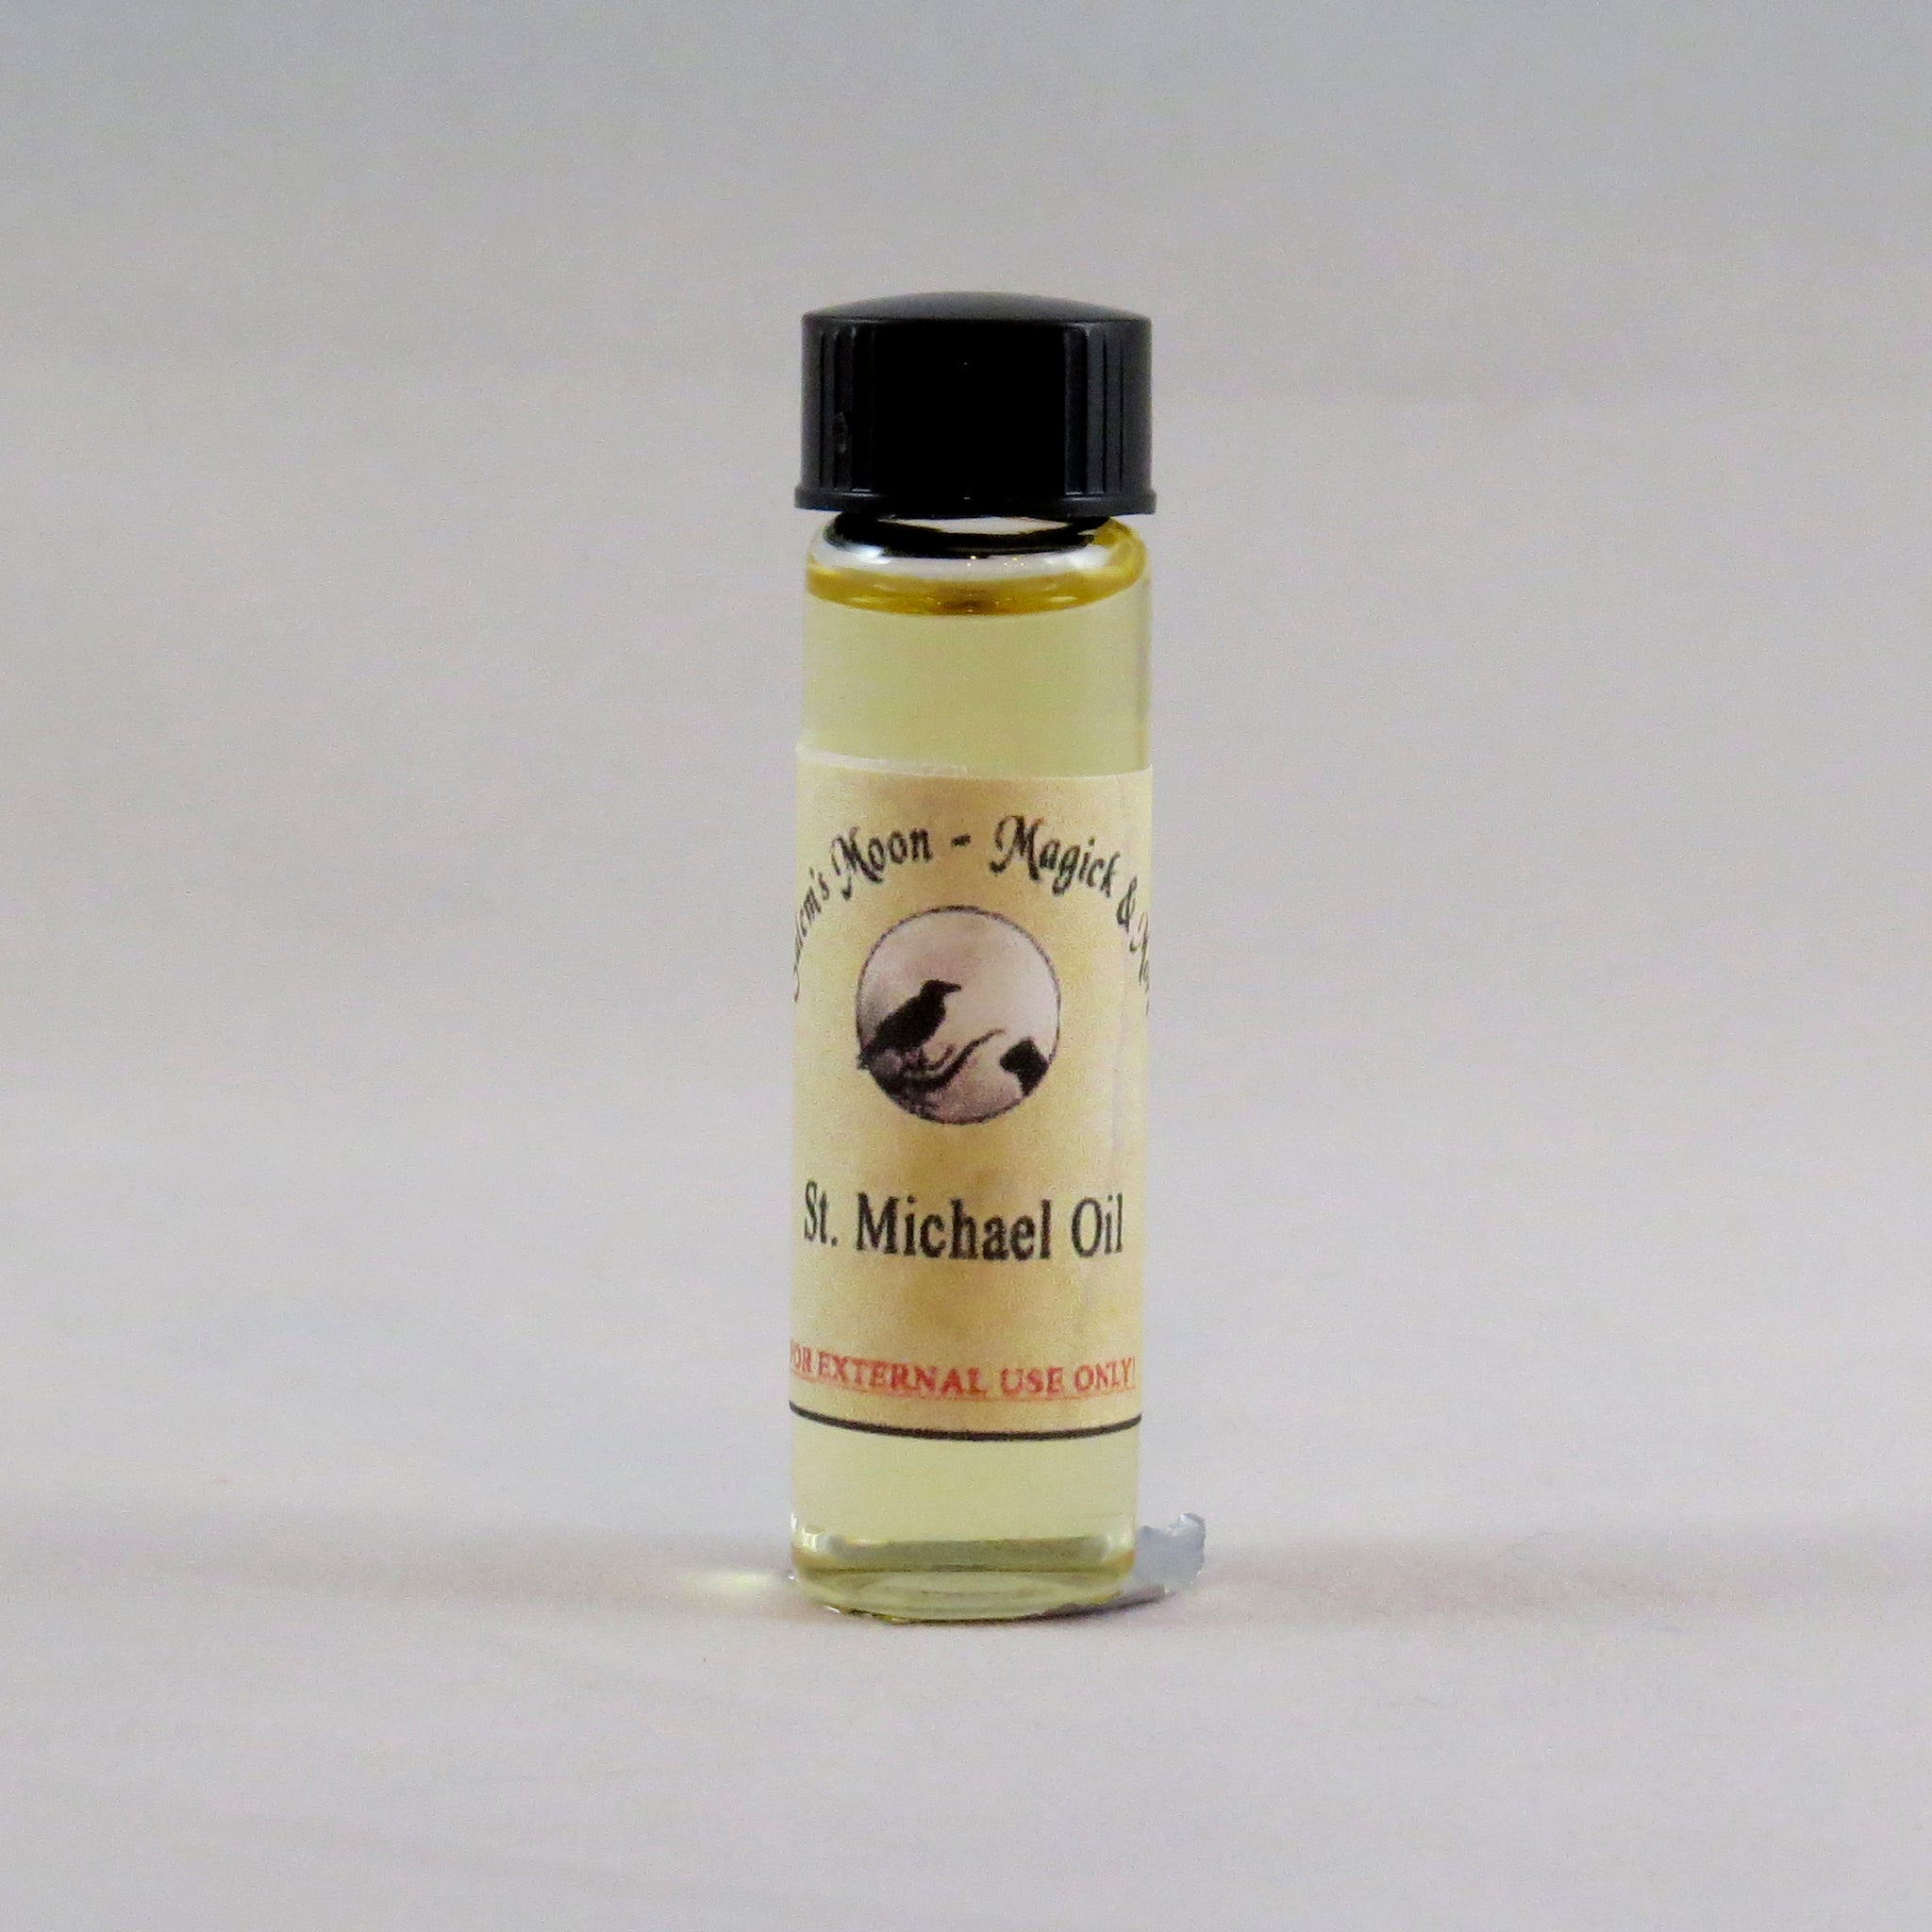 St. Michael Oil